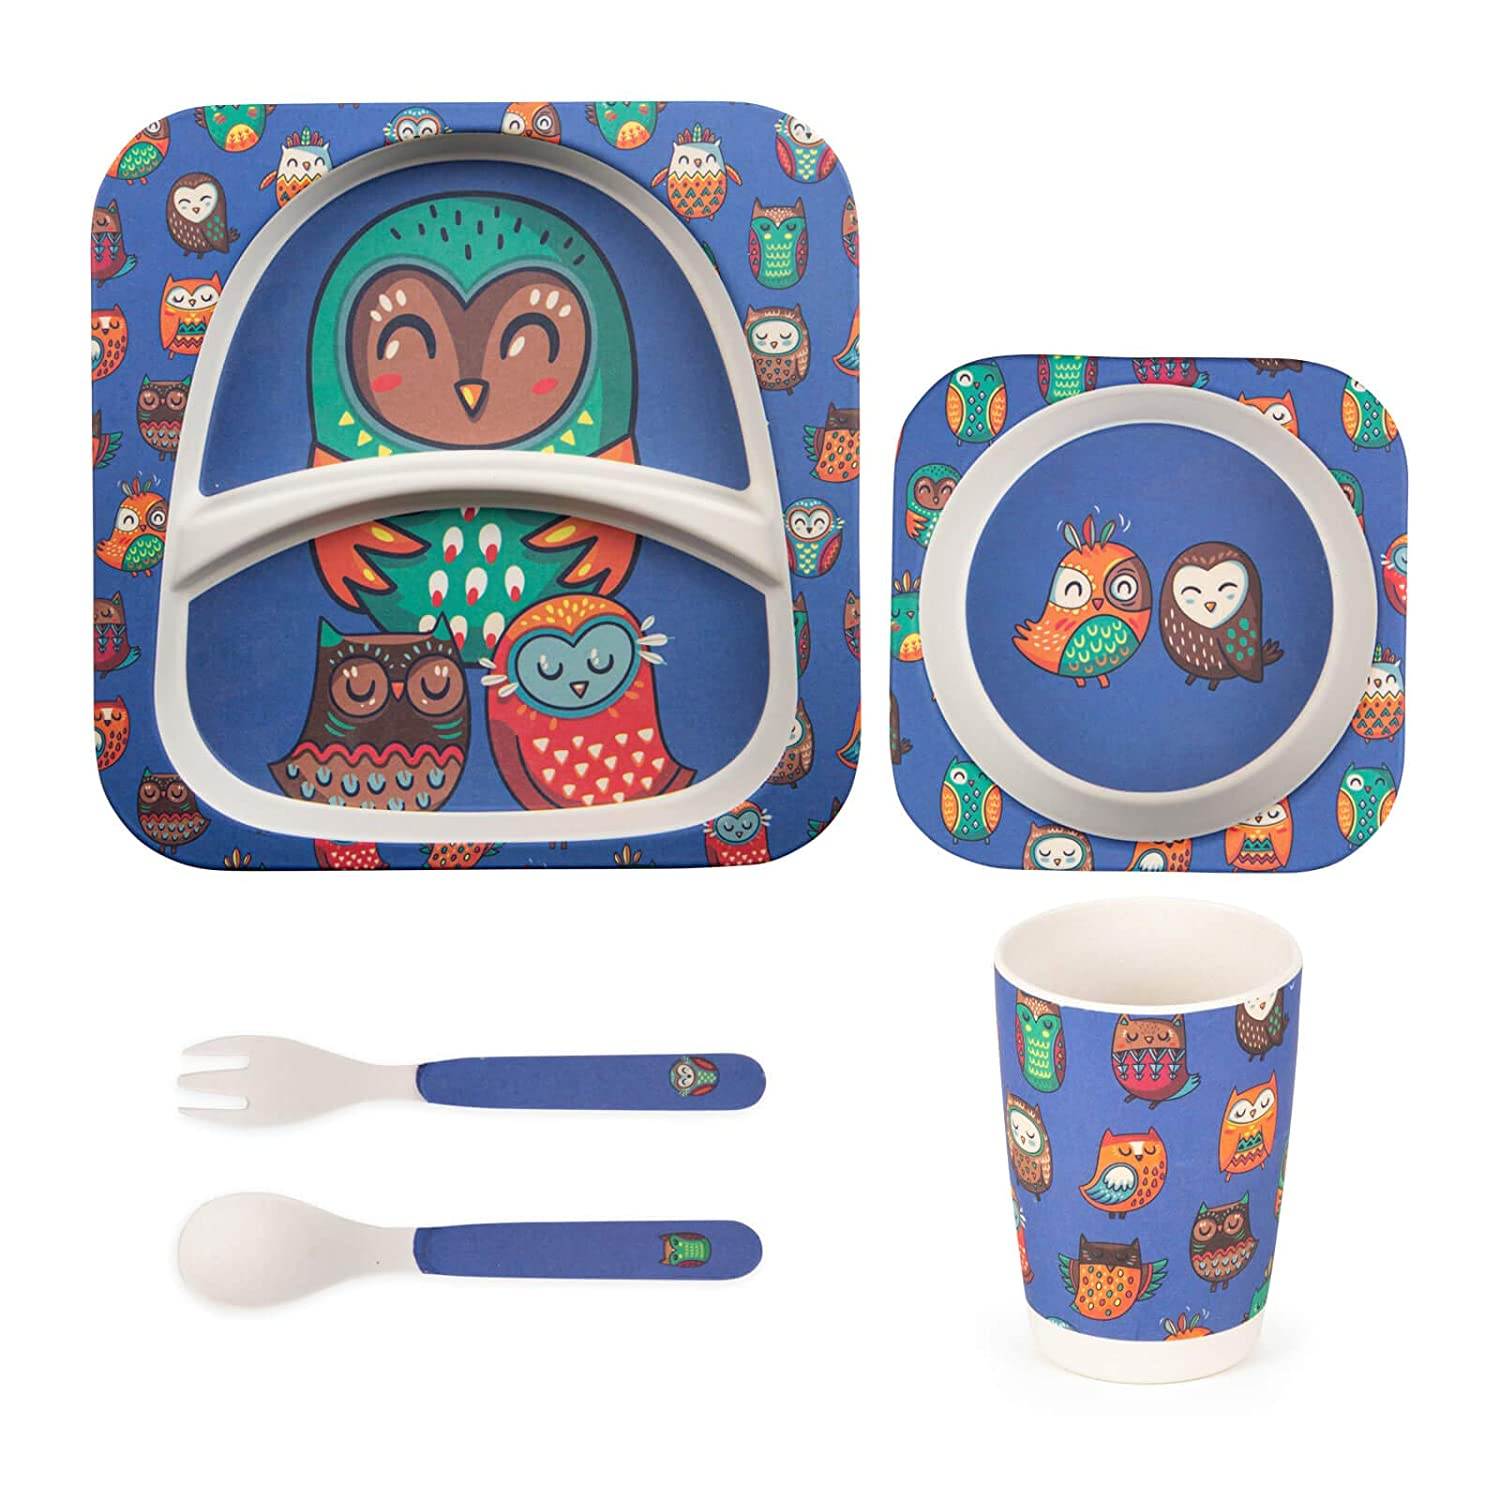 Kinder Geschirr Set Owl 5 teiliges Kindergeschirr Set aus Bambus Kinderbesteck M/üslischale Trinkbecher Kinderteller